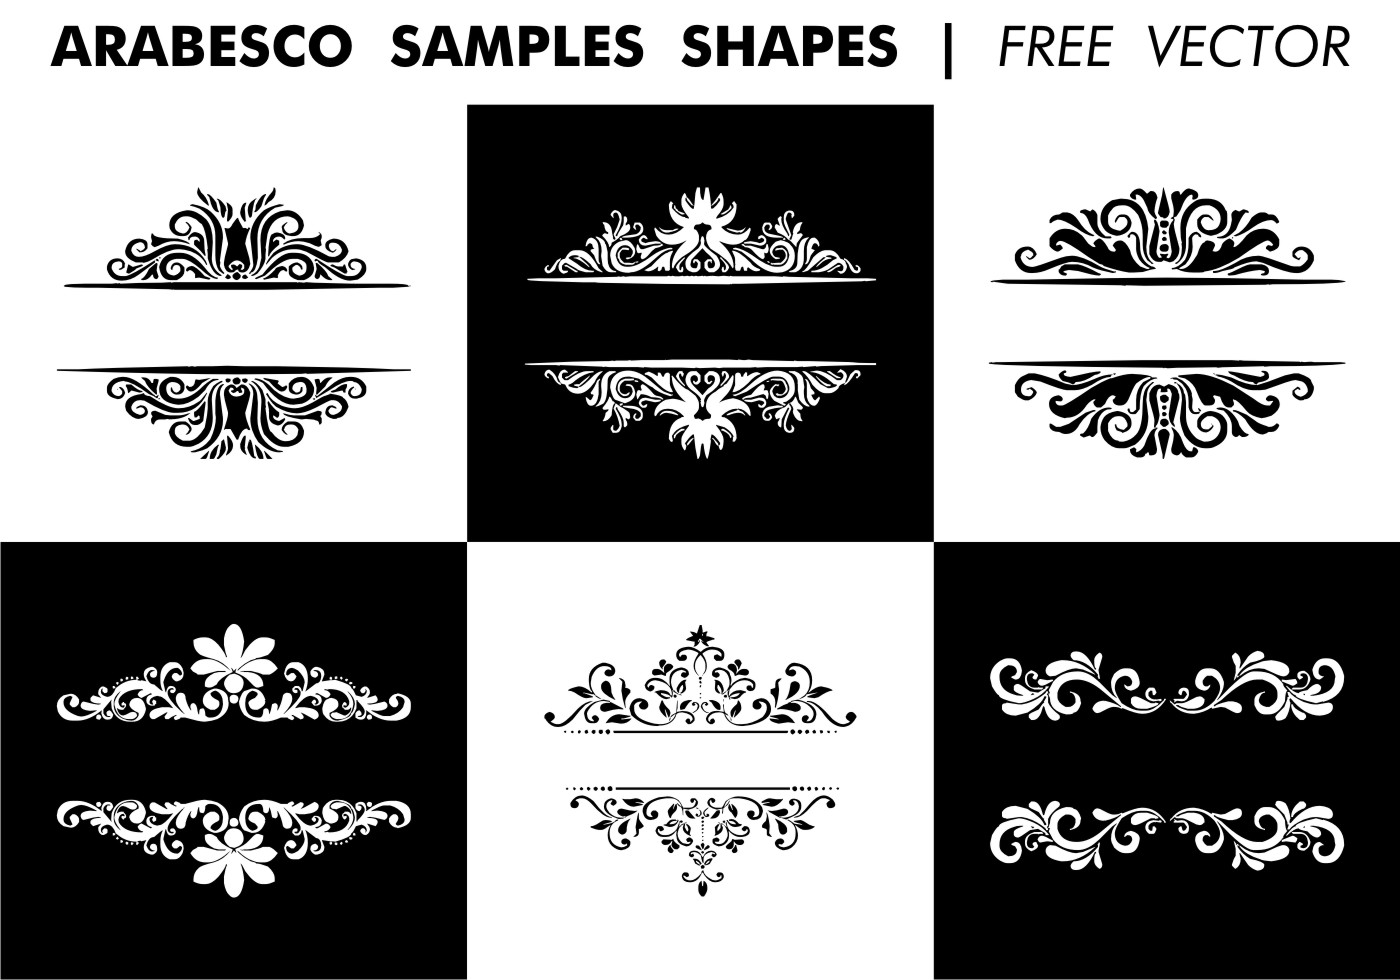 Arabesco Sample Shapes Vector Download Free Vector Art